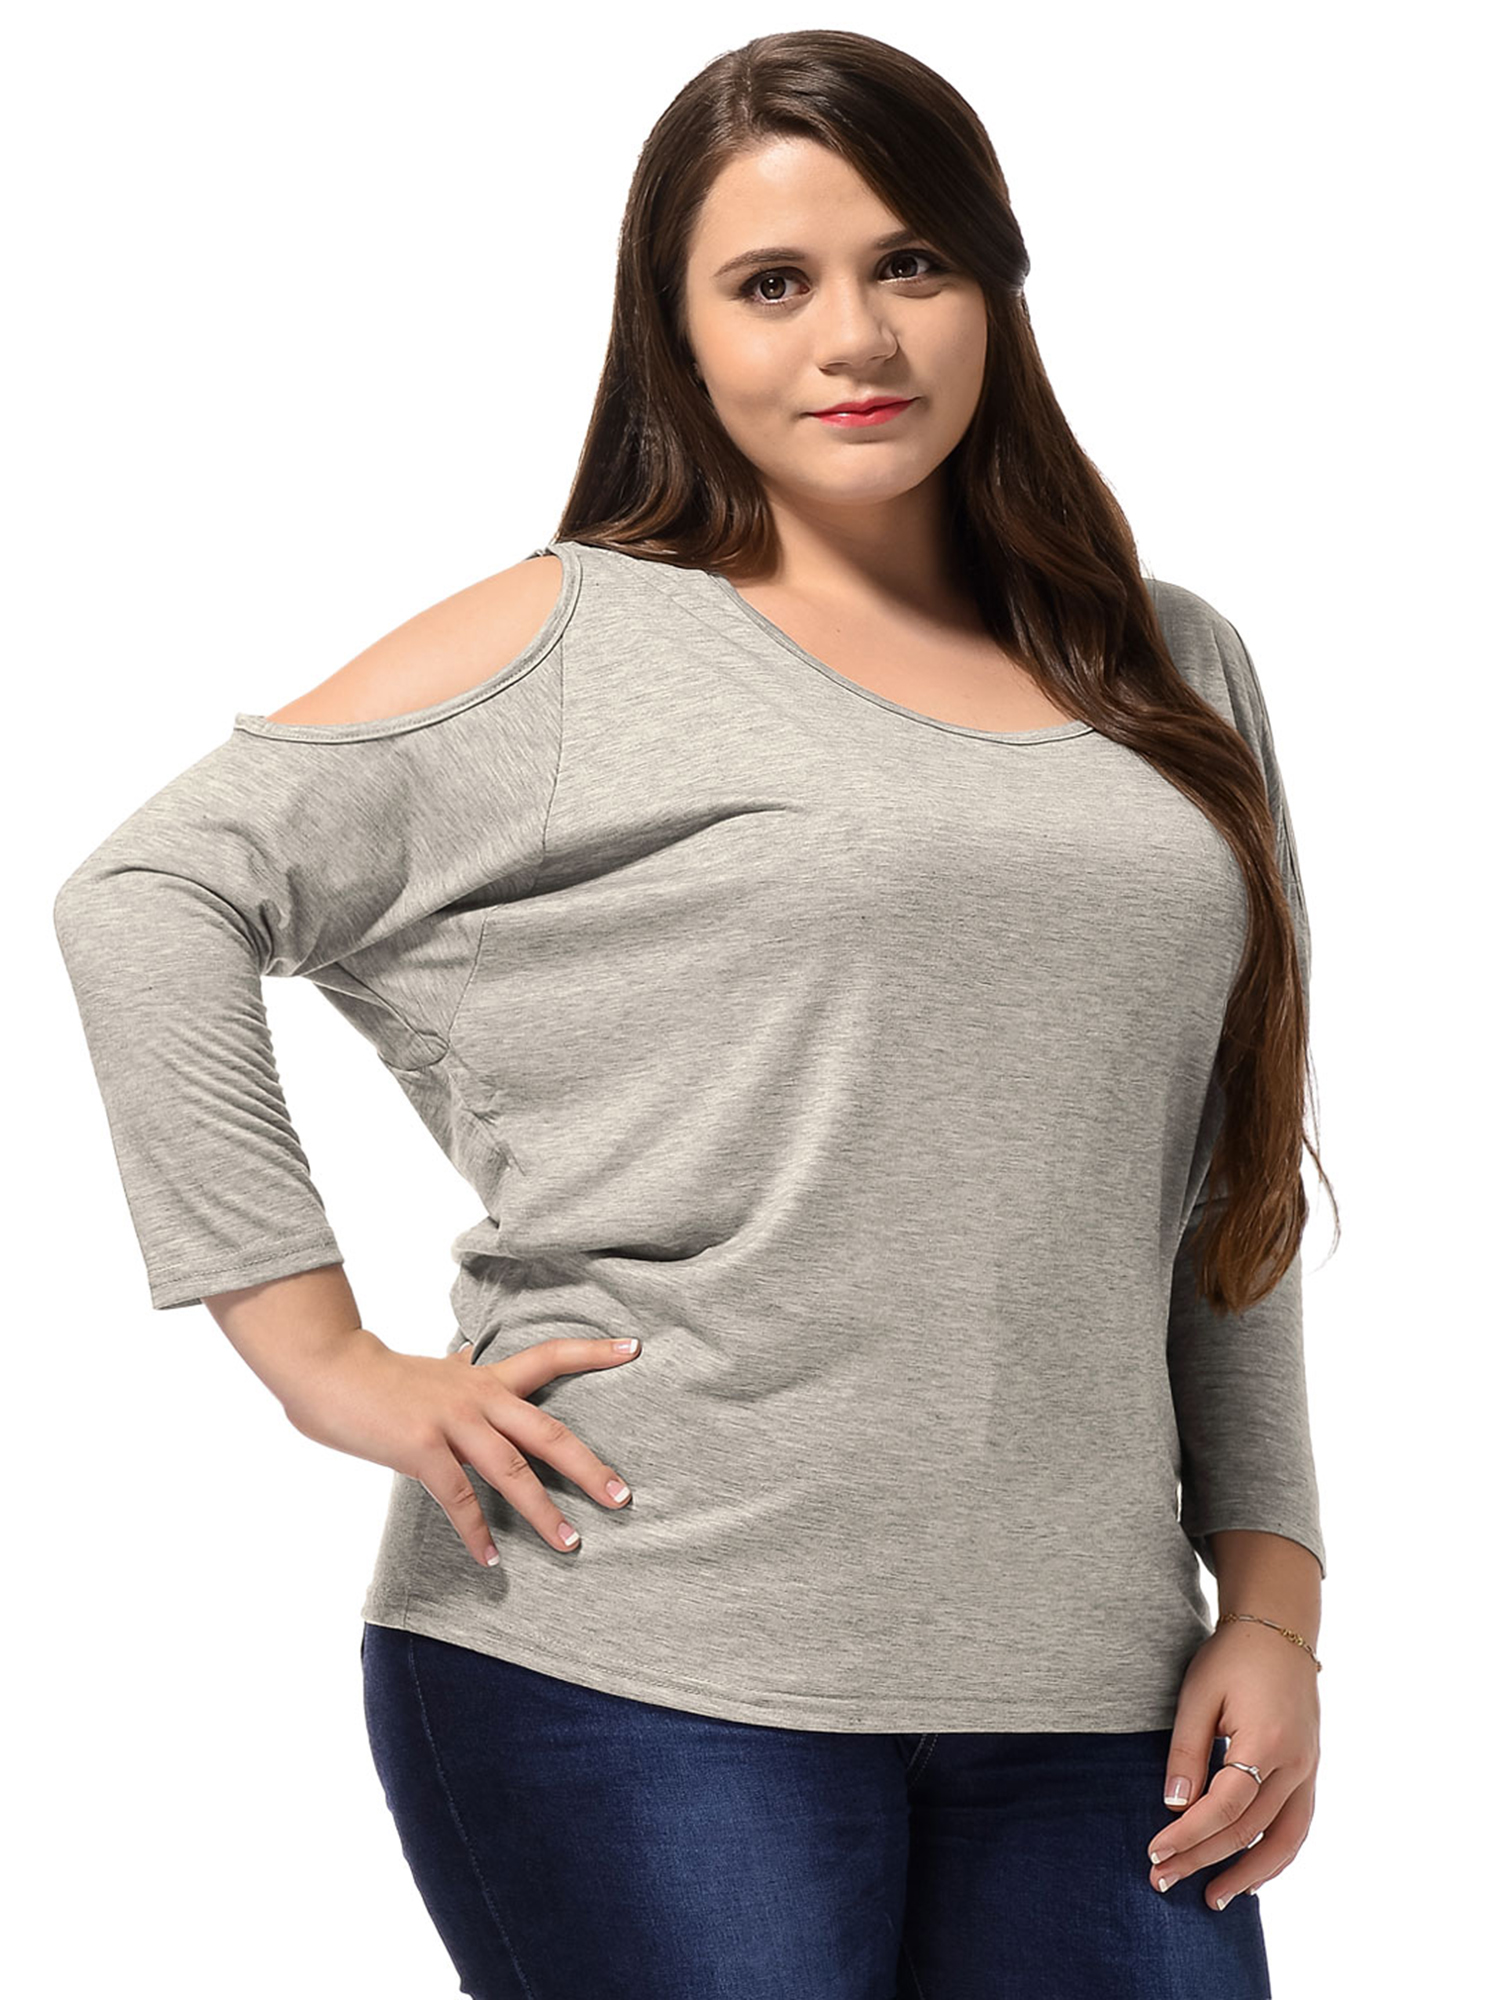 LightScoop Neck Fashional Loose Top for Lady Plus Size